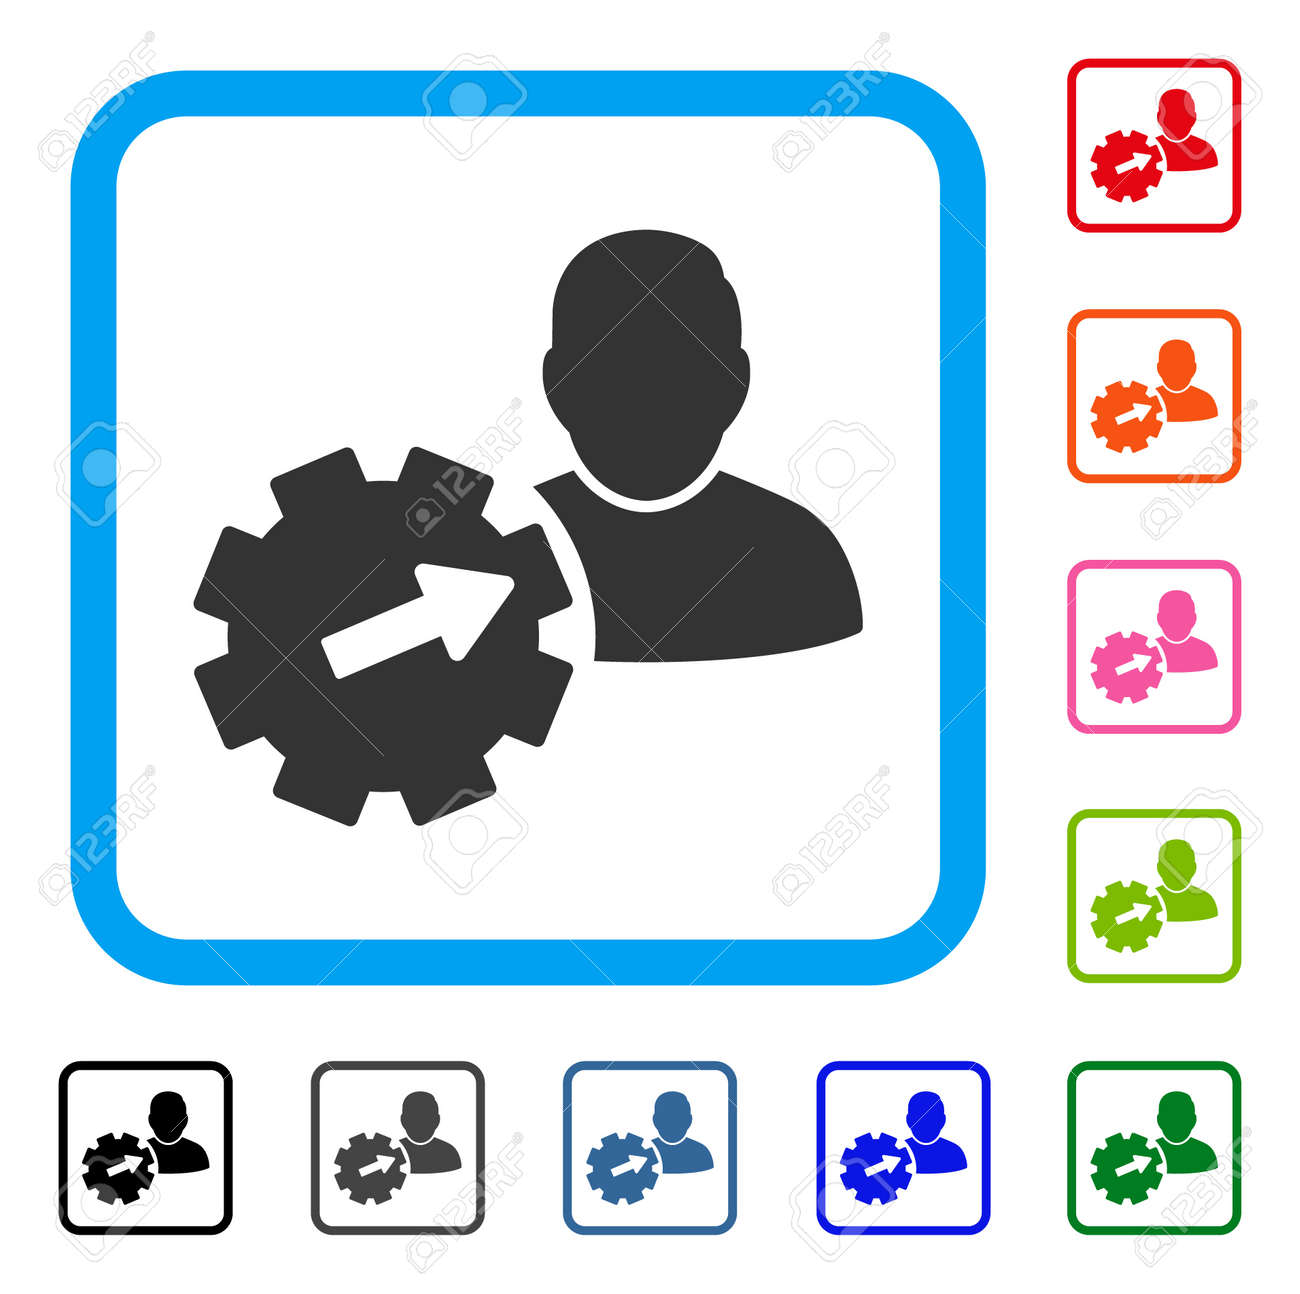 user integration api gear icon royalty free cliparts vectors and